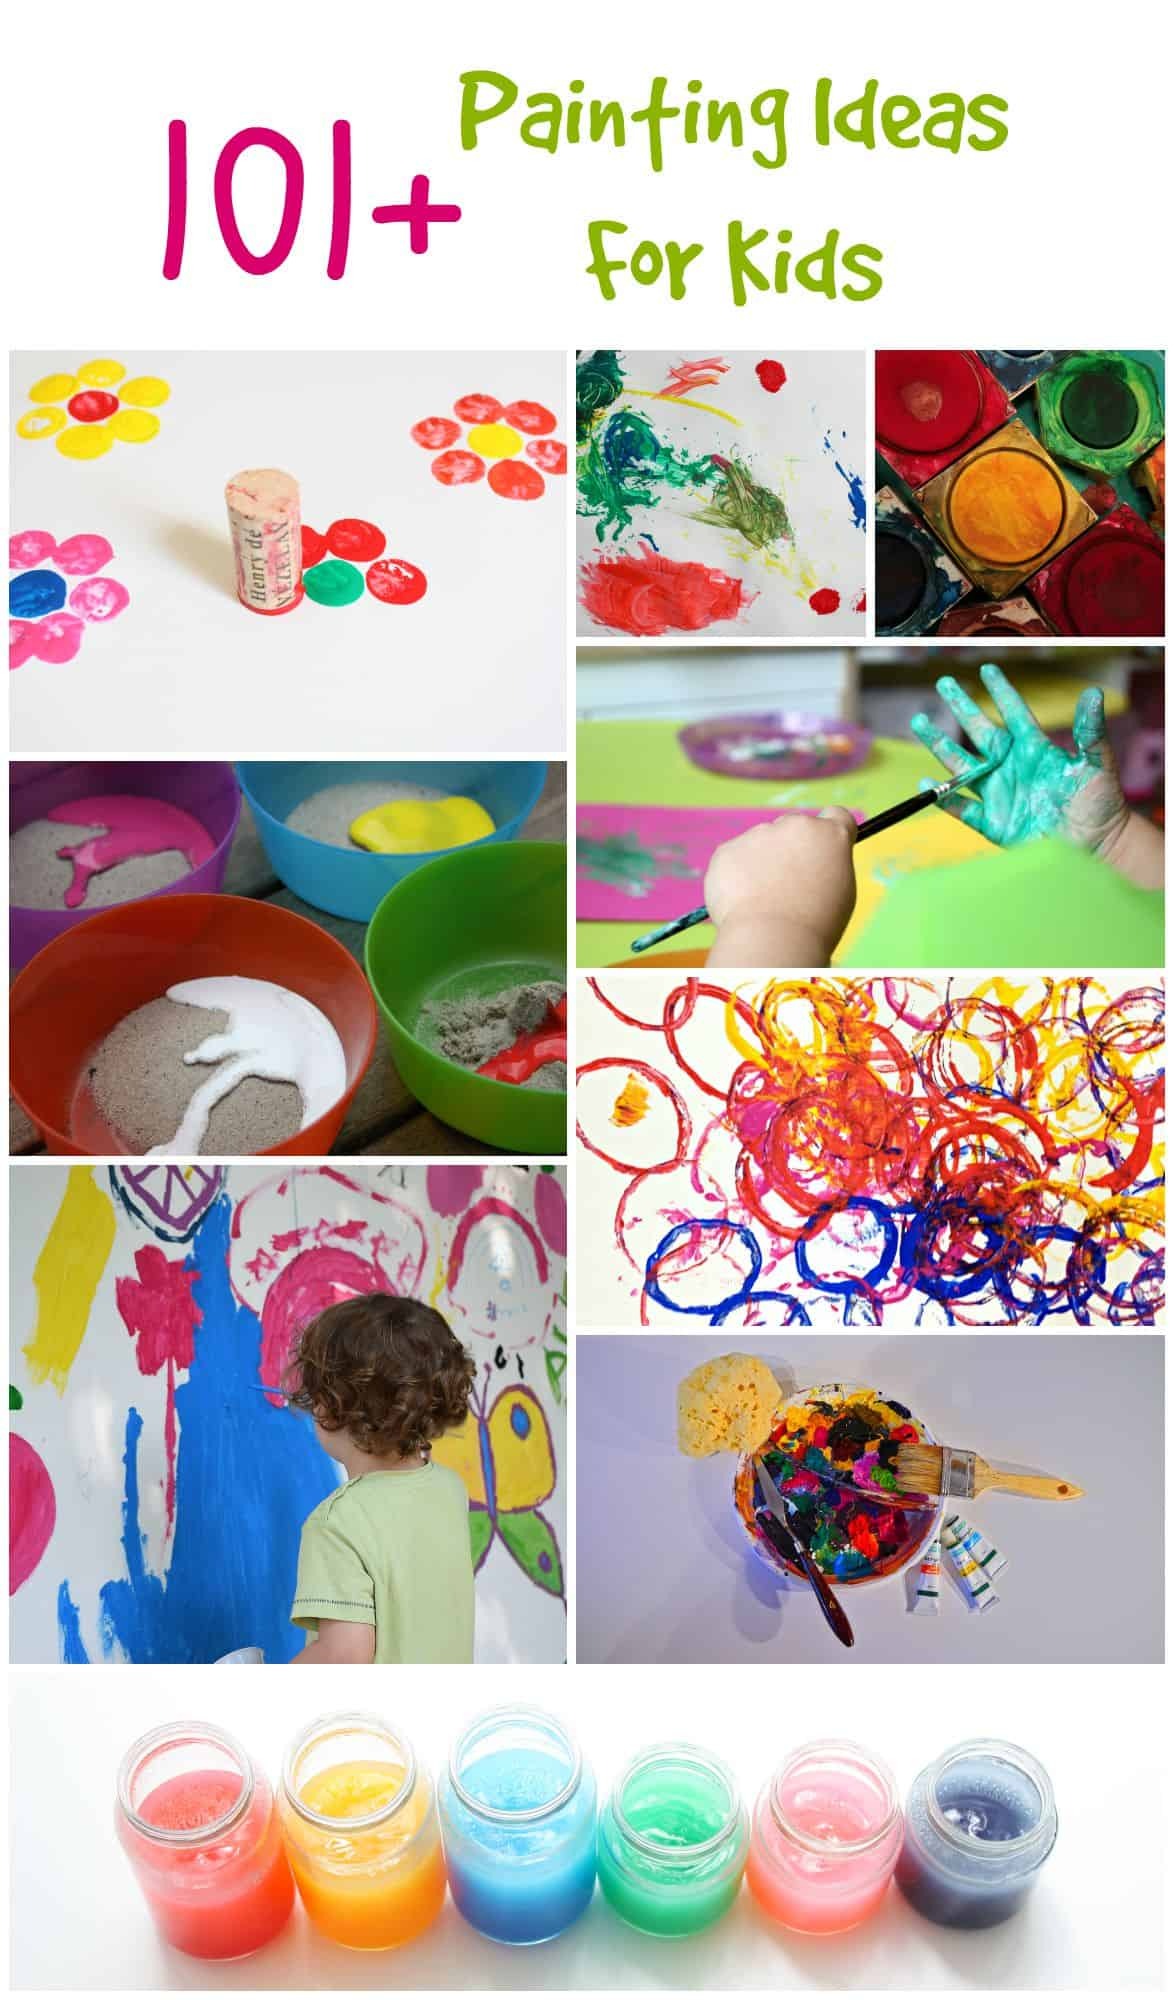 101 Painting Ideas for Kids